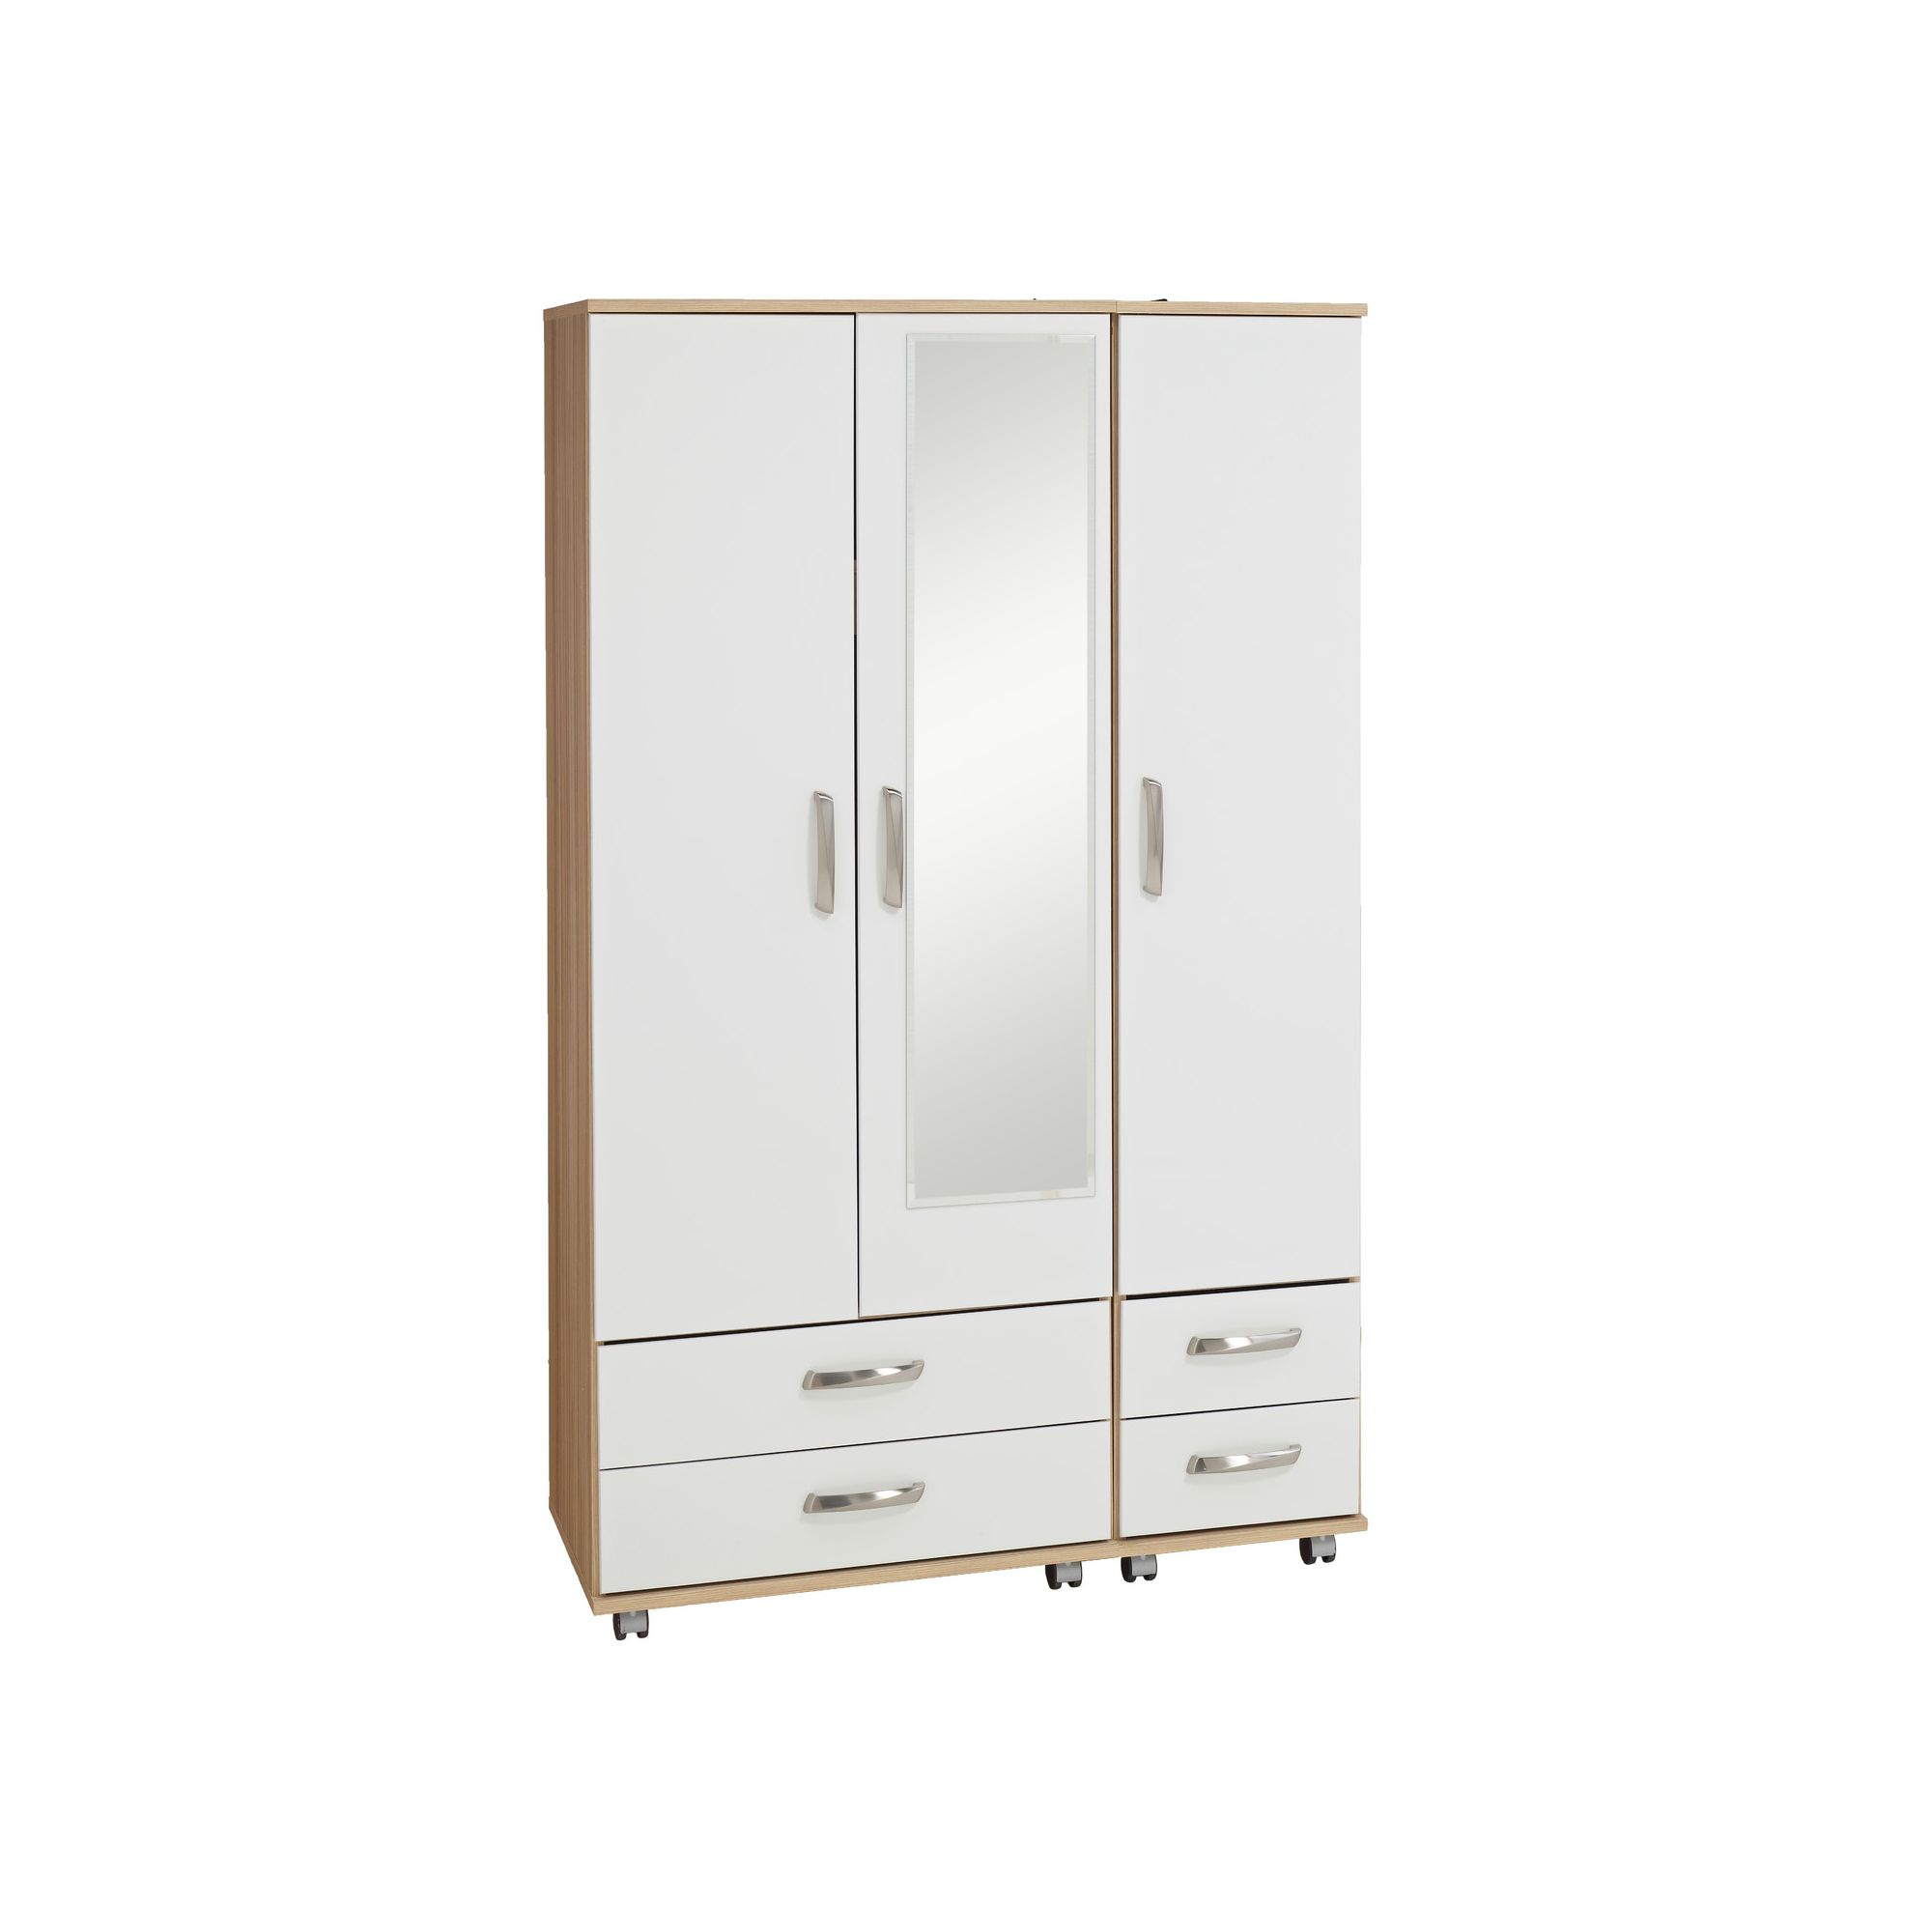 Ideal Furniture Regal 4 Drawer with Mirror Wardrobe in white at Tesco Direct